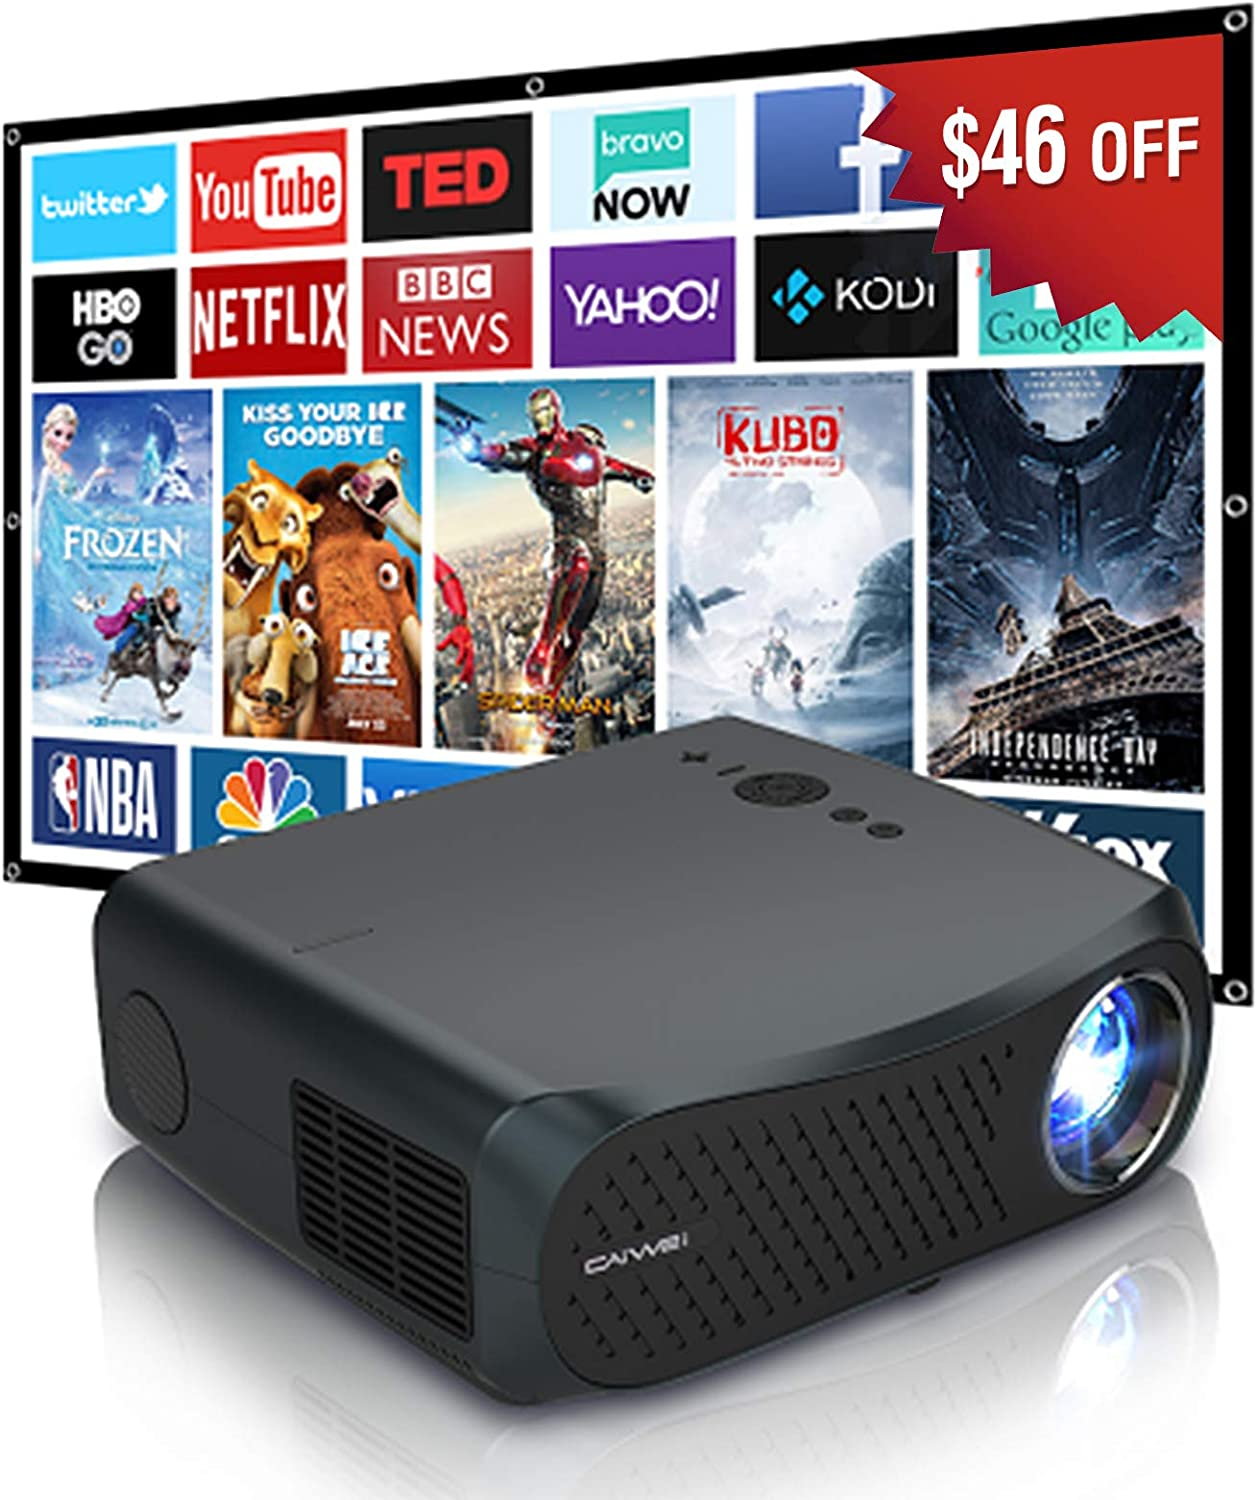 Projector 1080P, 2021 Upgrade 7200lumen Support 4K Wireless Home Theater Projectors with Bluetooth WiFi HDMI USB Speaker for Outdoor Moive Office Presentation DVD Playstation Games Fire TV Stick